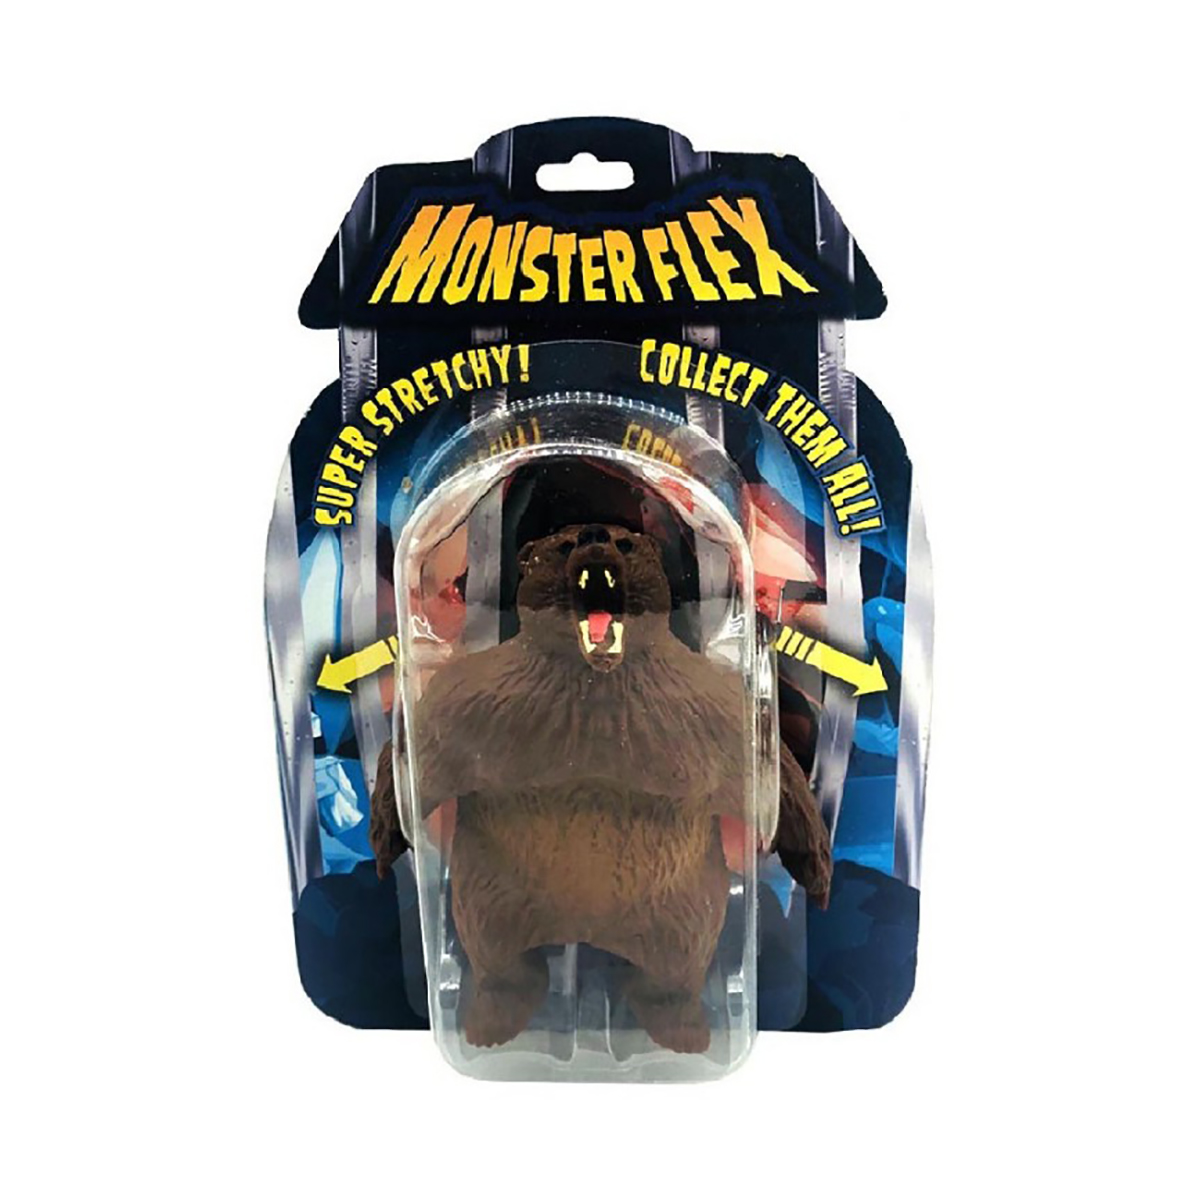 Figurina flexibila Monster Flex, Grizzly